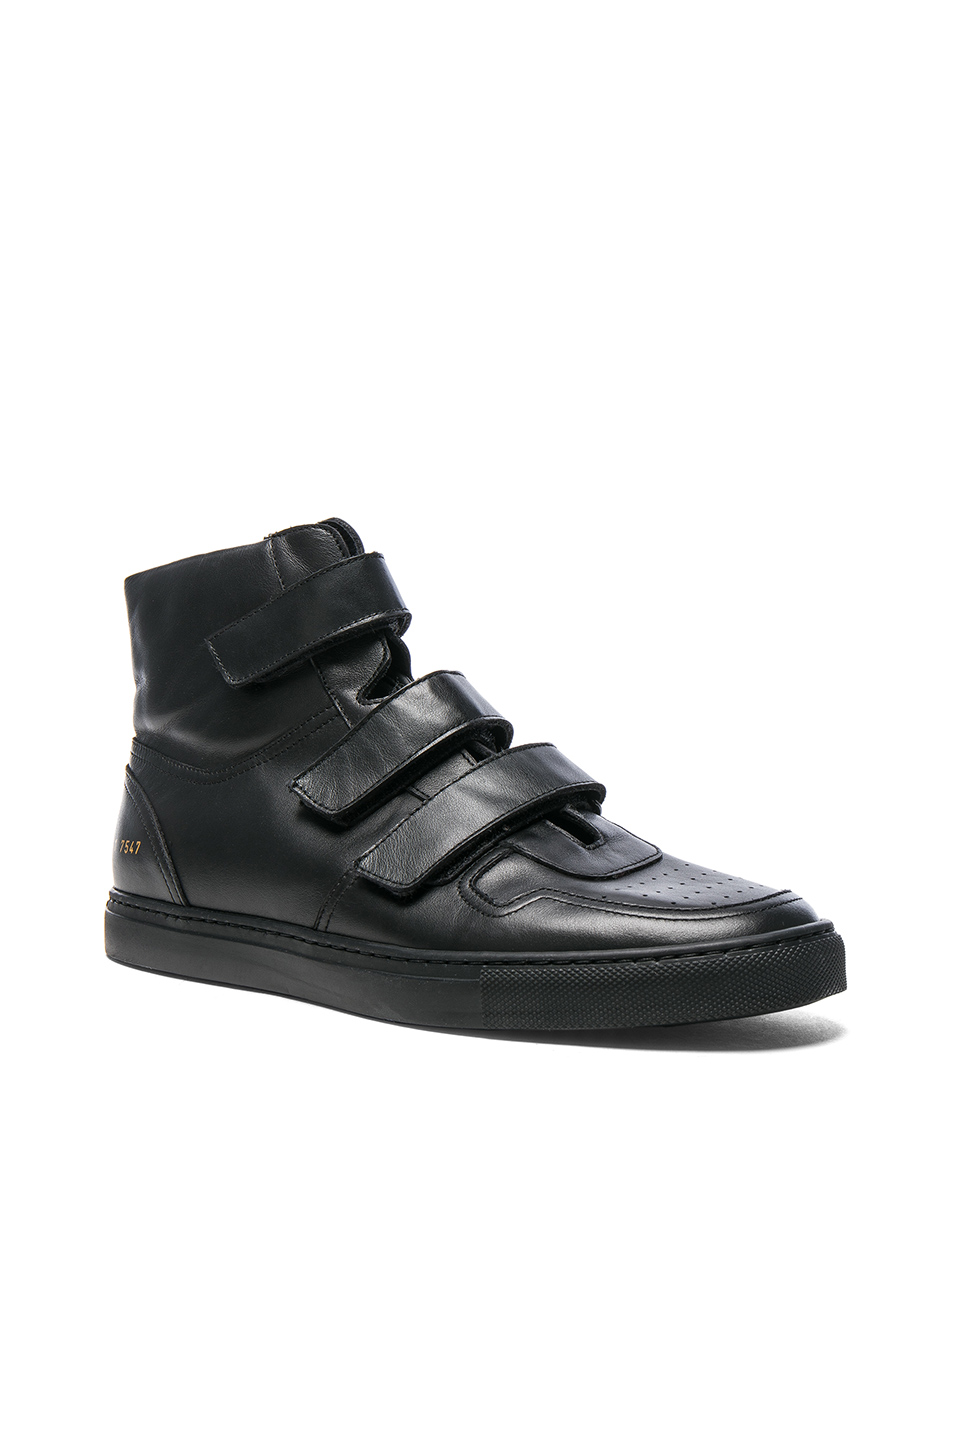 Photo of Robert Geller x Common Projects Velcro Leather High Tops in Black - shop Robert Geller menswear